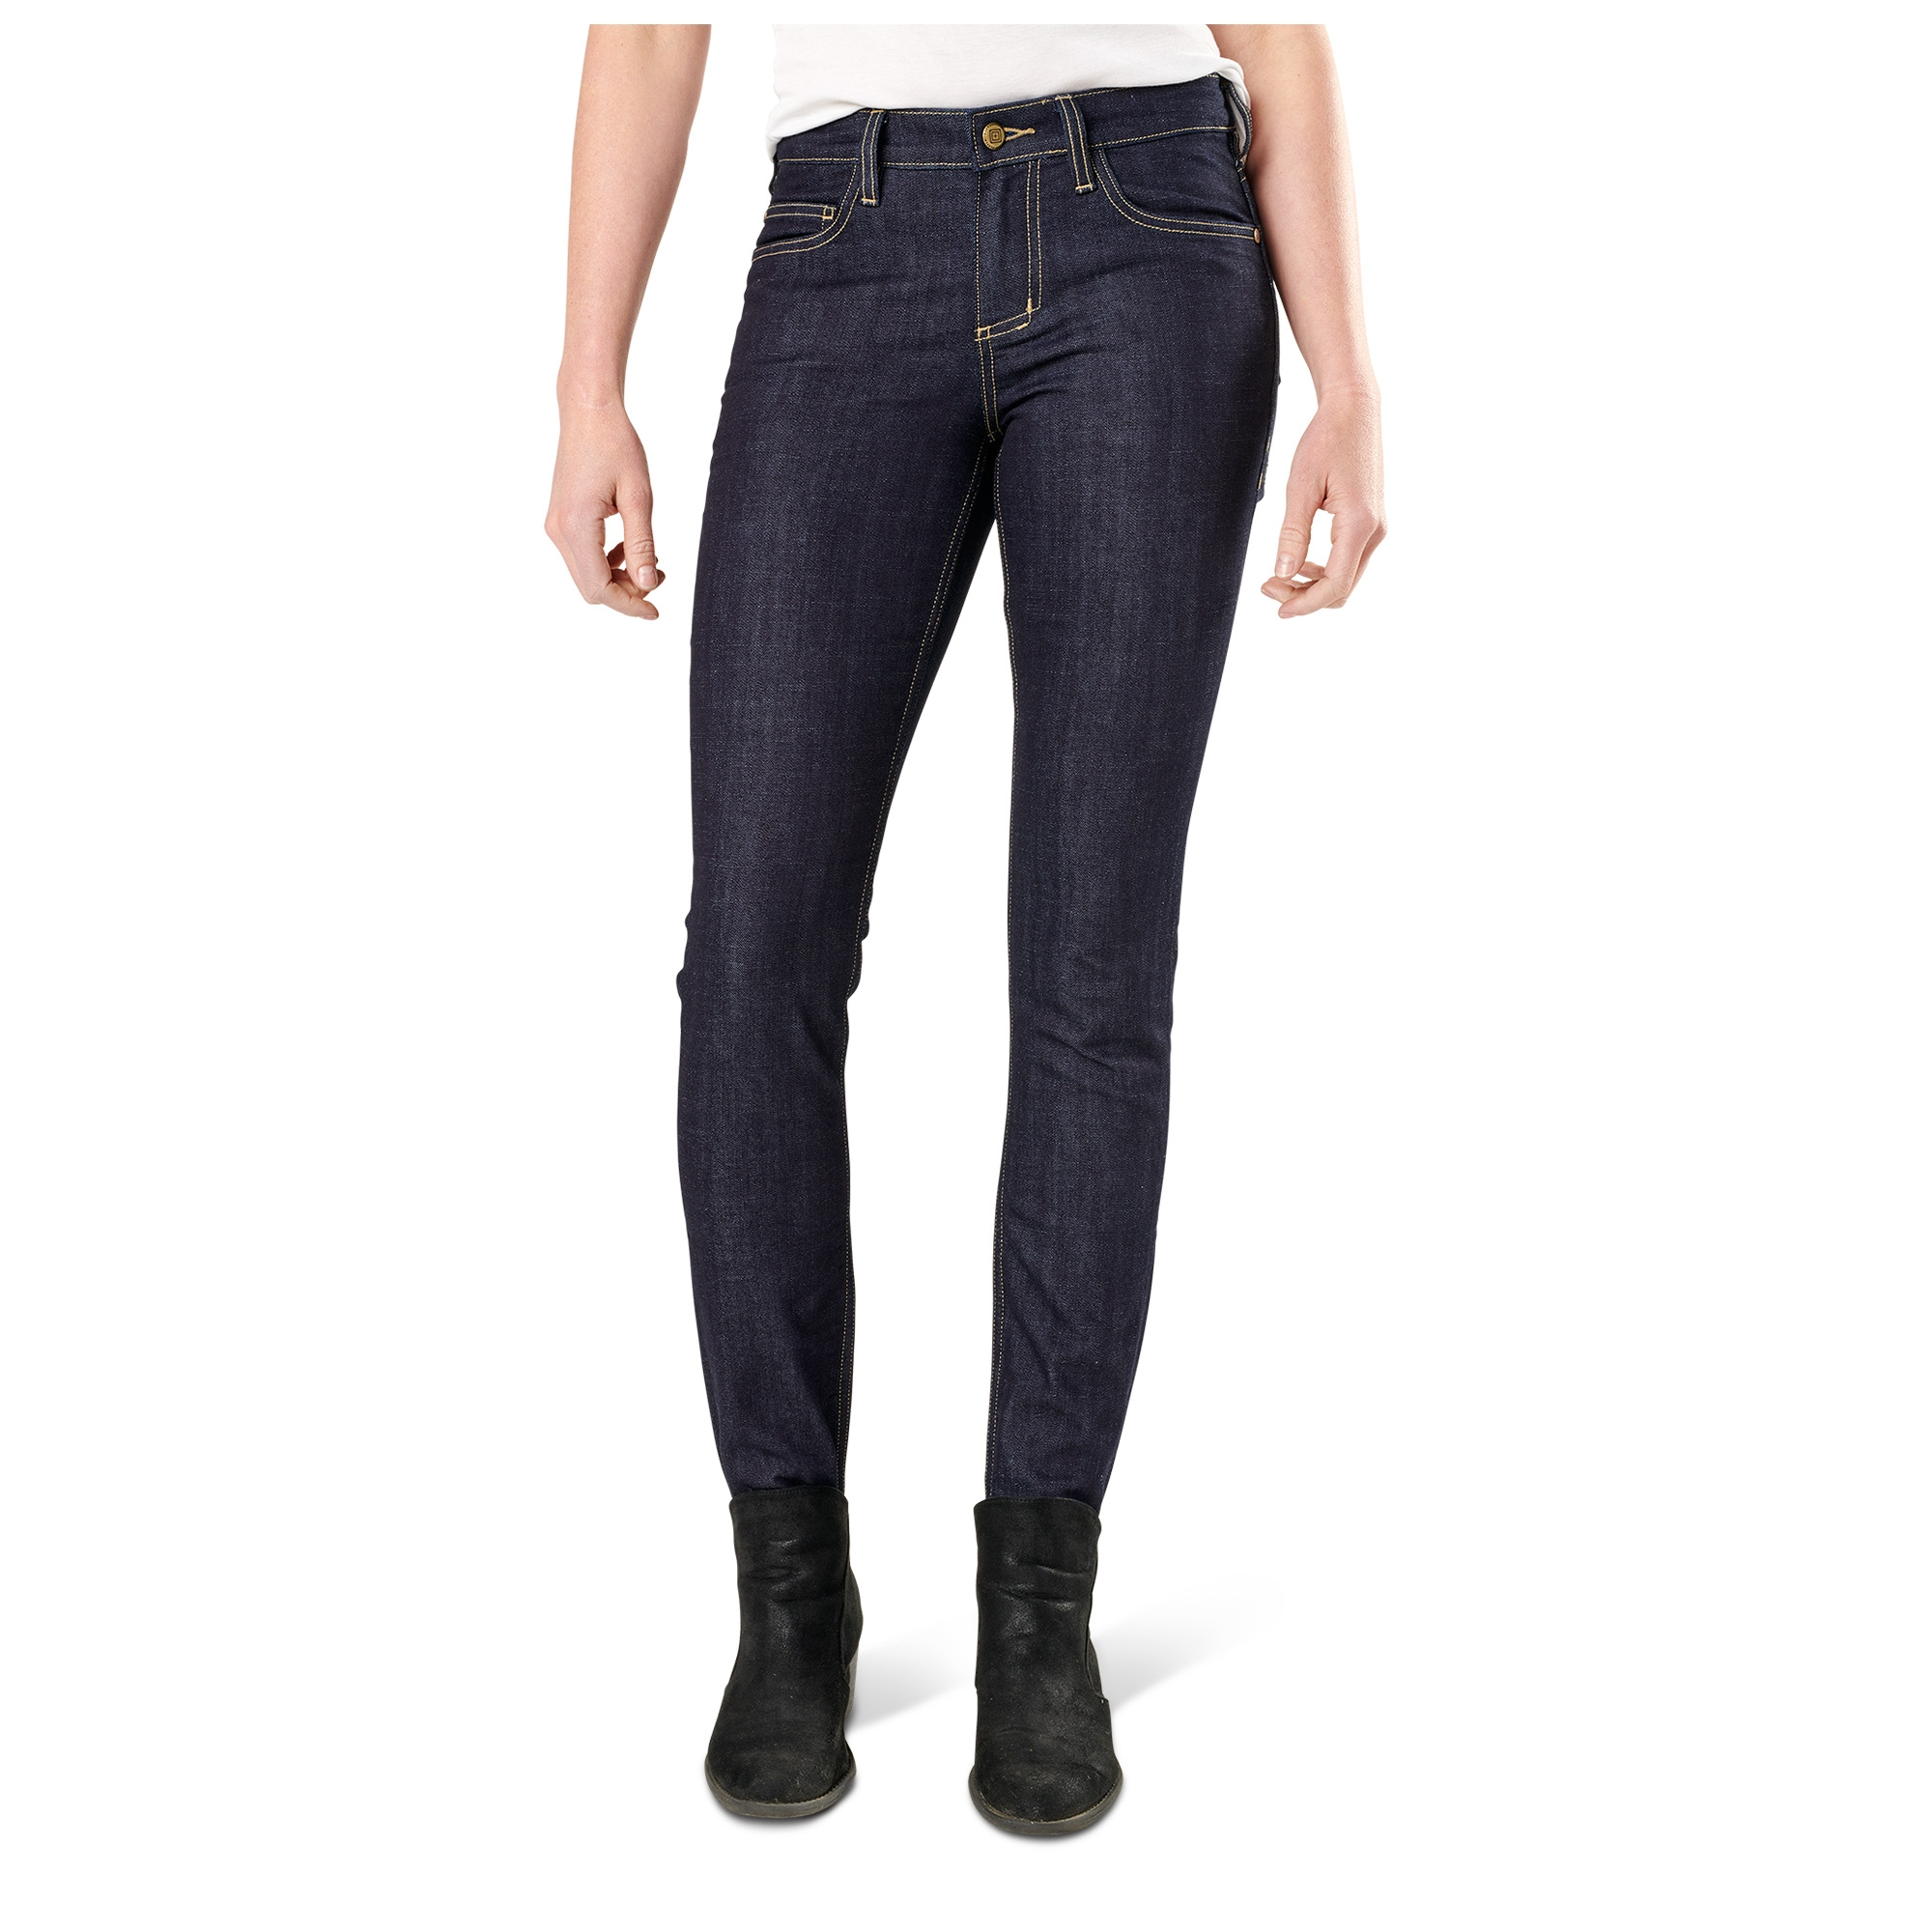 5.11 Tactical Women Women's Defender-Flex Slim Jean (Blue)